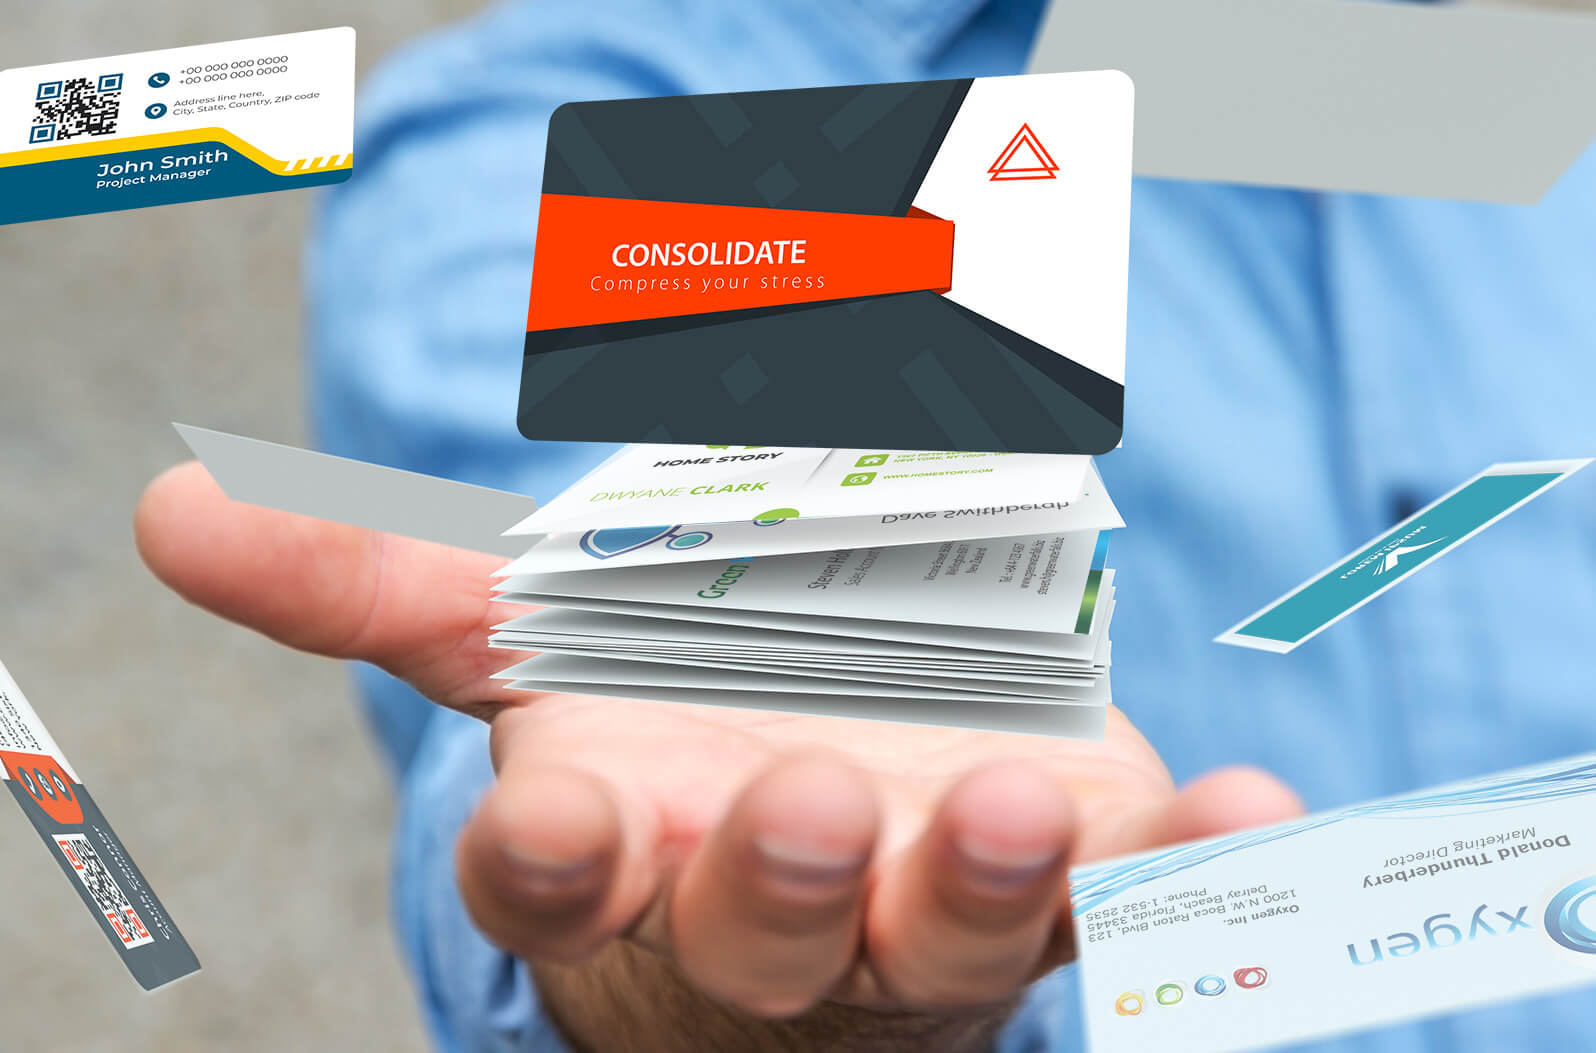 Cardiris 5 - Scan and convert business cards efficiently